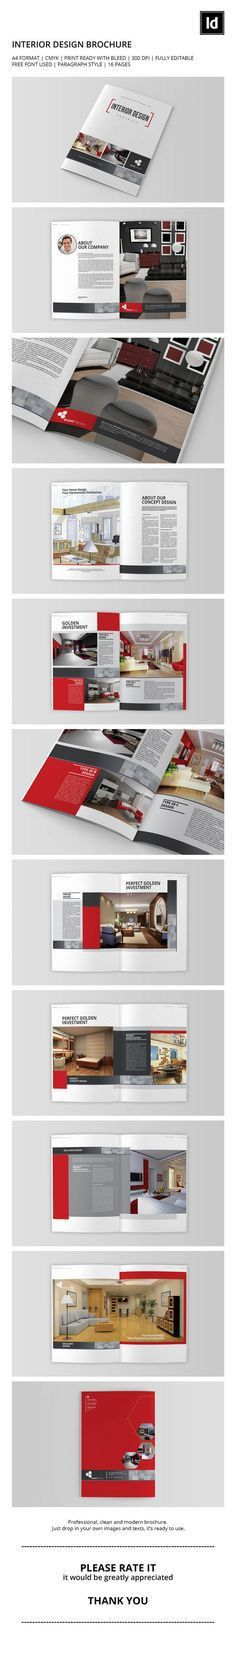 Interior Design Brochure | Brochures, Interiors and Editorial